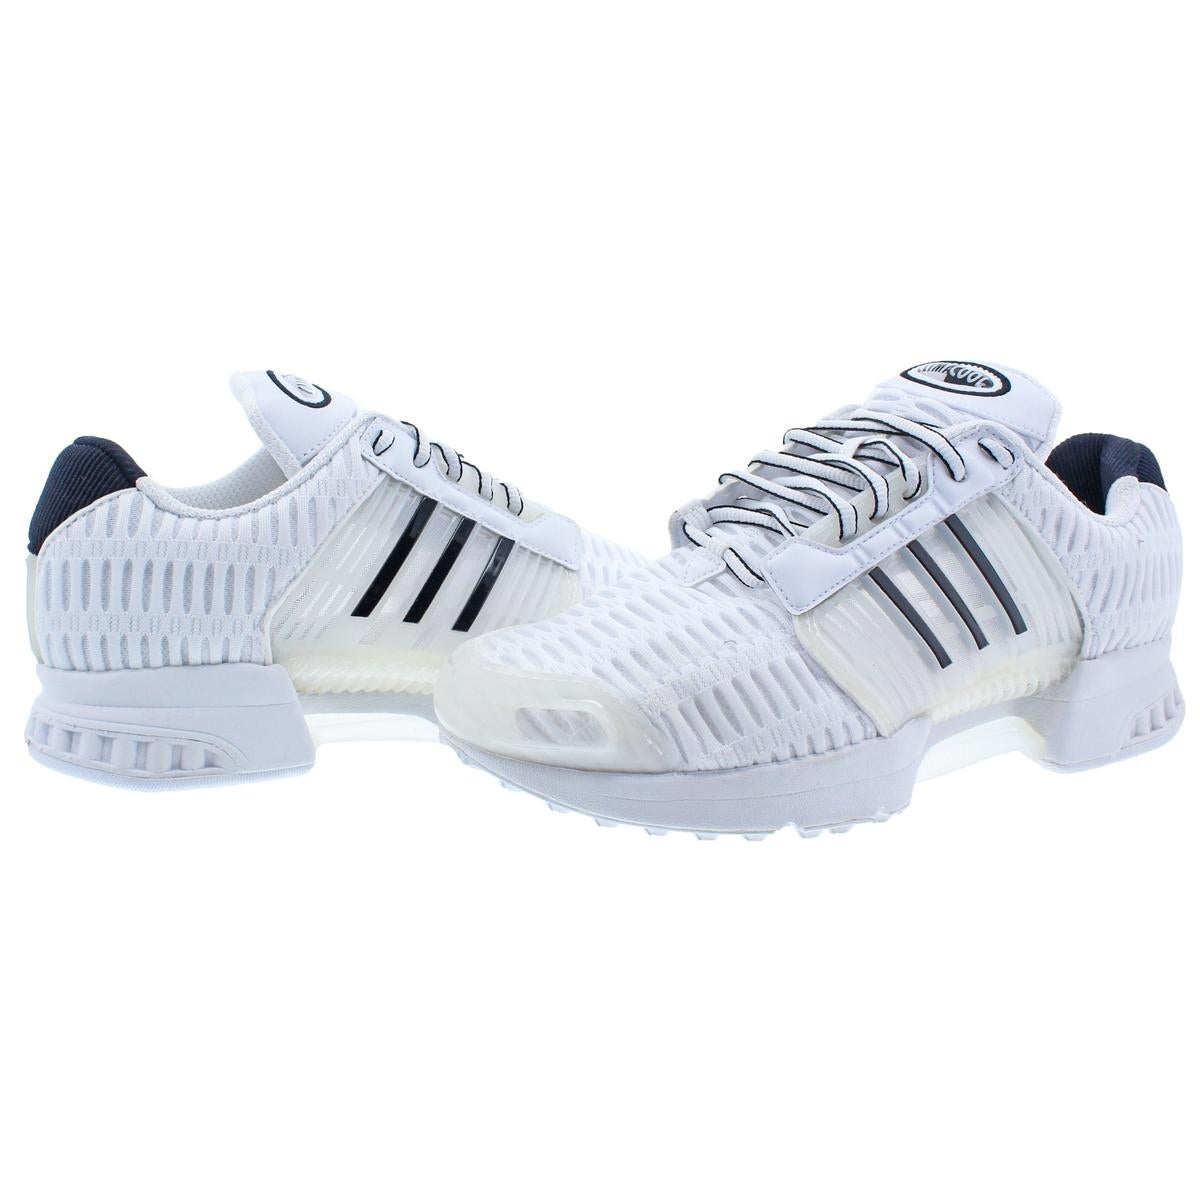 1 Adiprene 4zrxioqp Cool Adidas Shop 8 Low Mens Running Clima Top Shoes lT13FcKJ